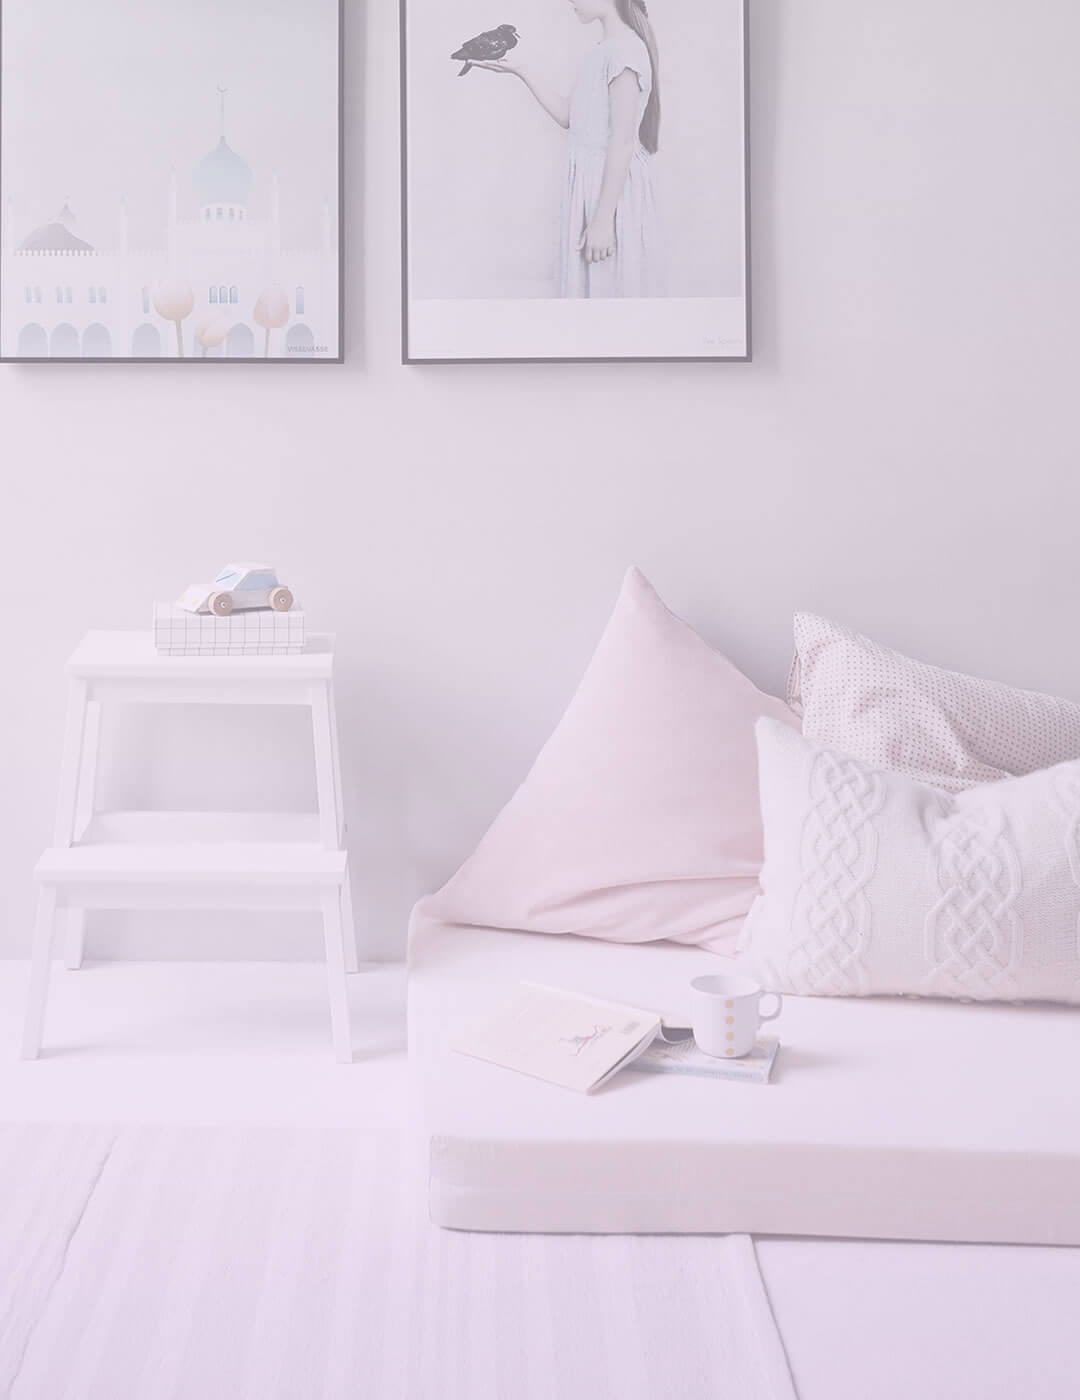 minimalistic room decor as a suggestion for boring life